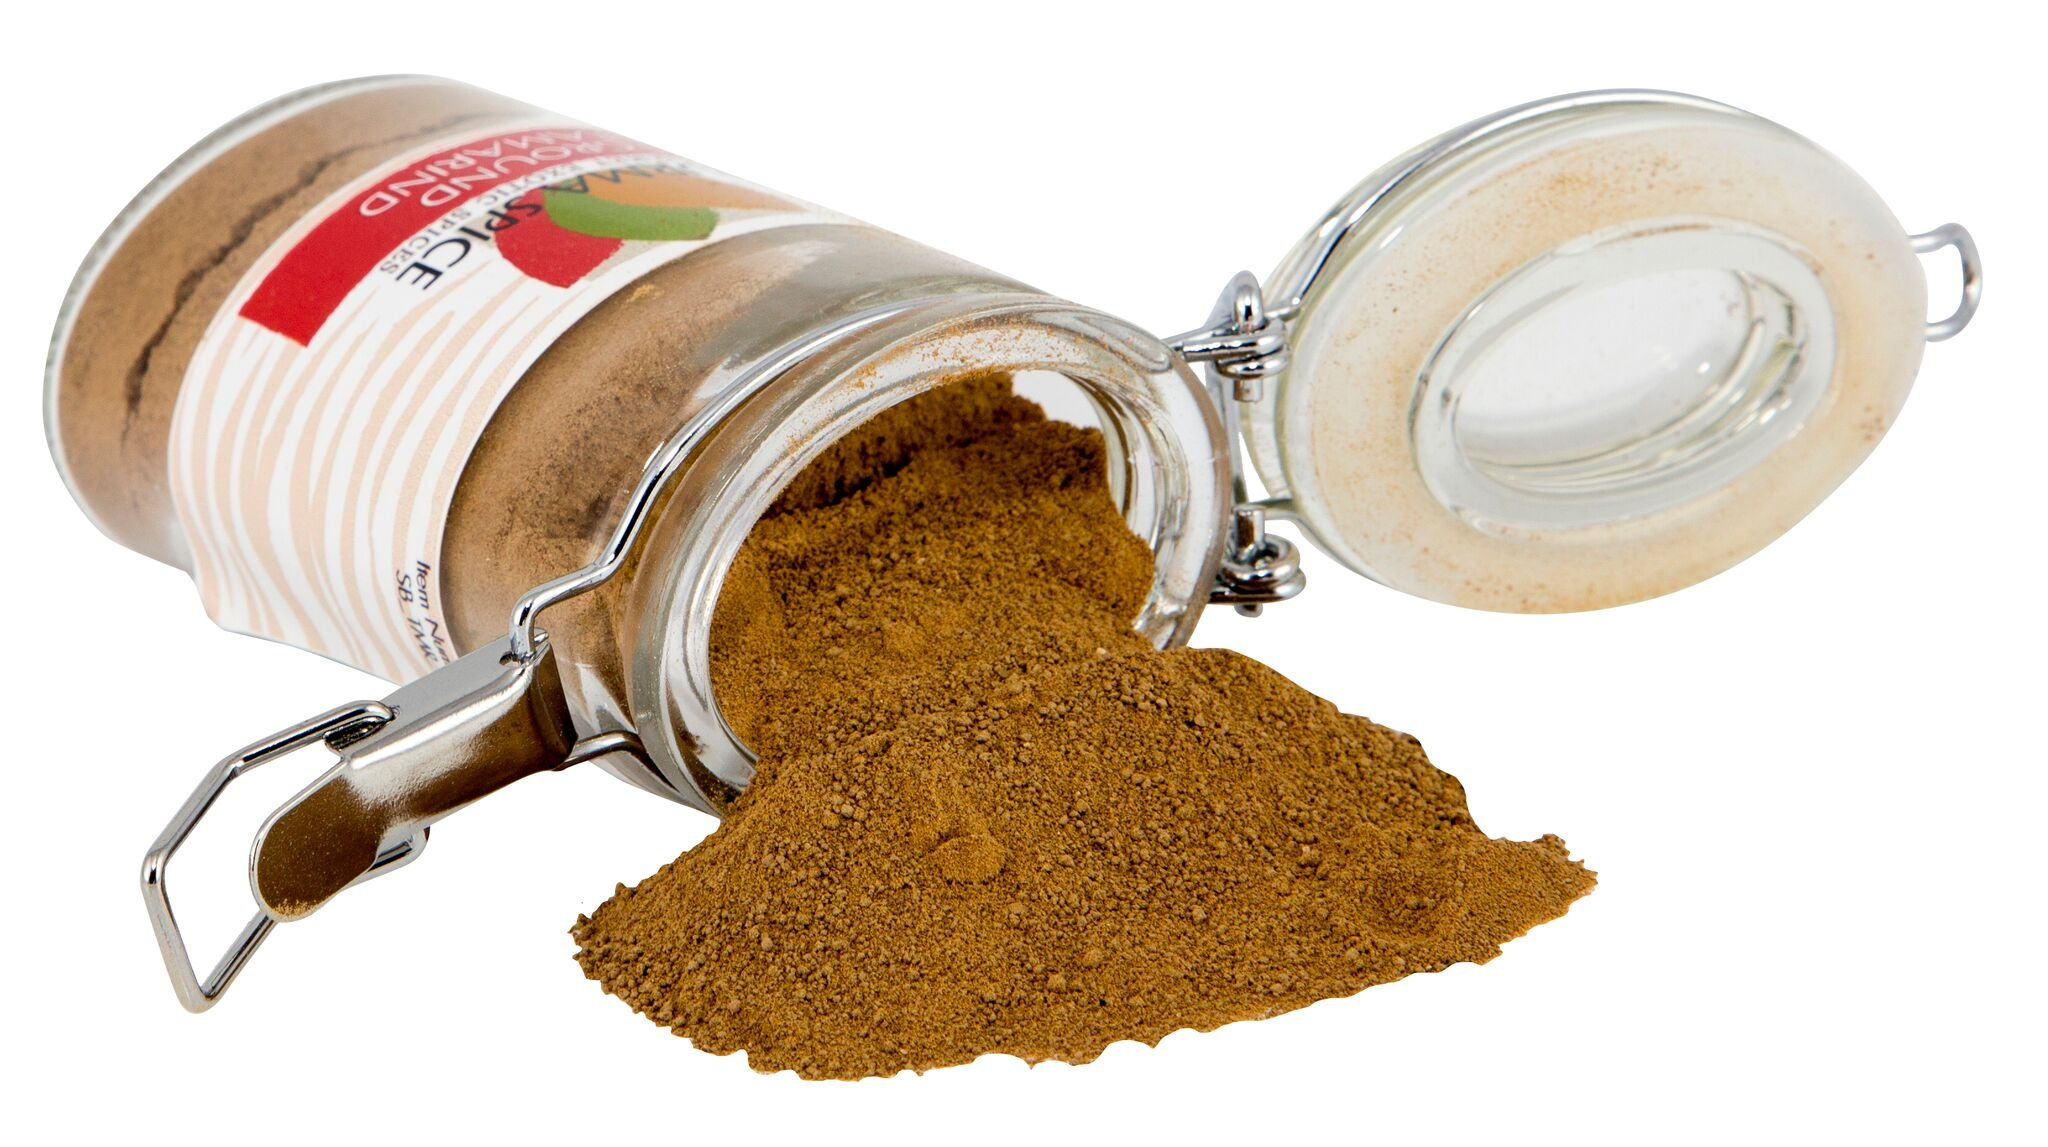 Ground Tamarind : Indian Spice, No Additives, Pure Powder (3oz.)